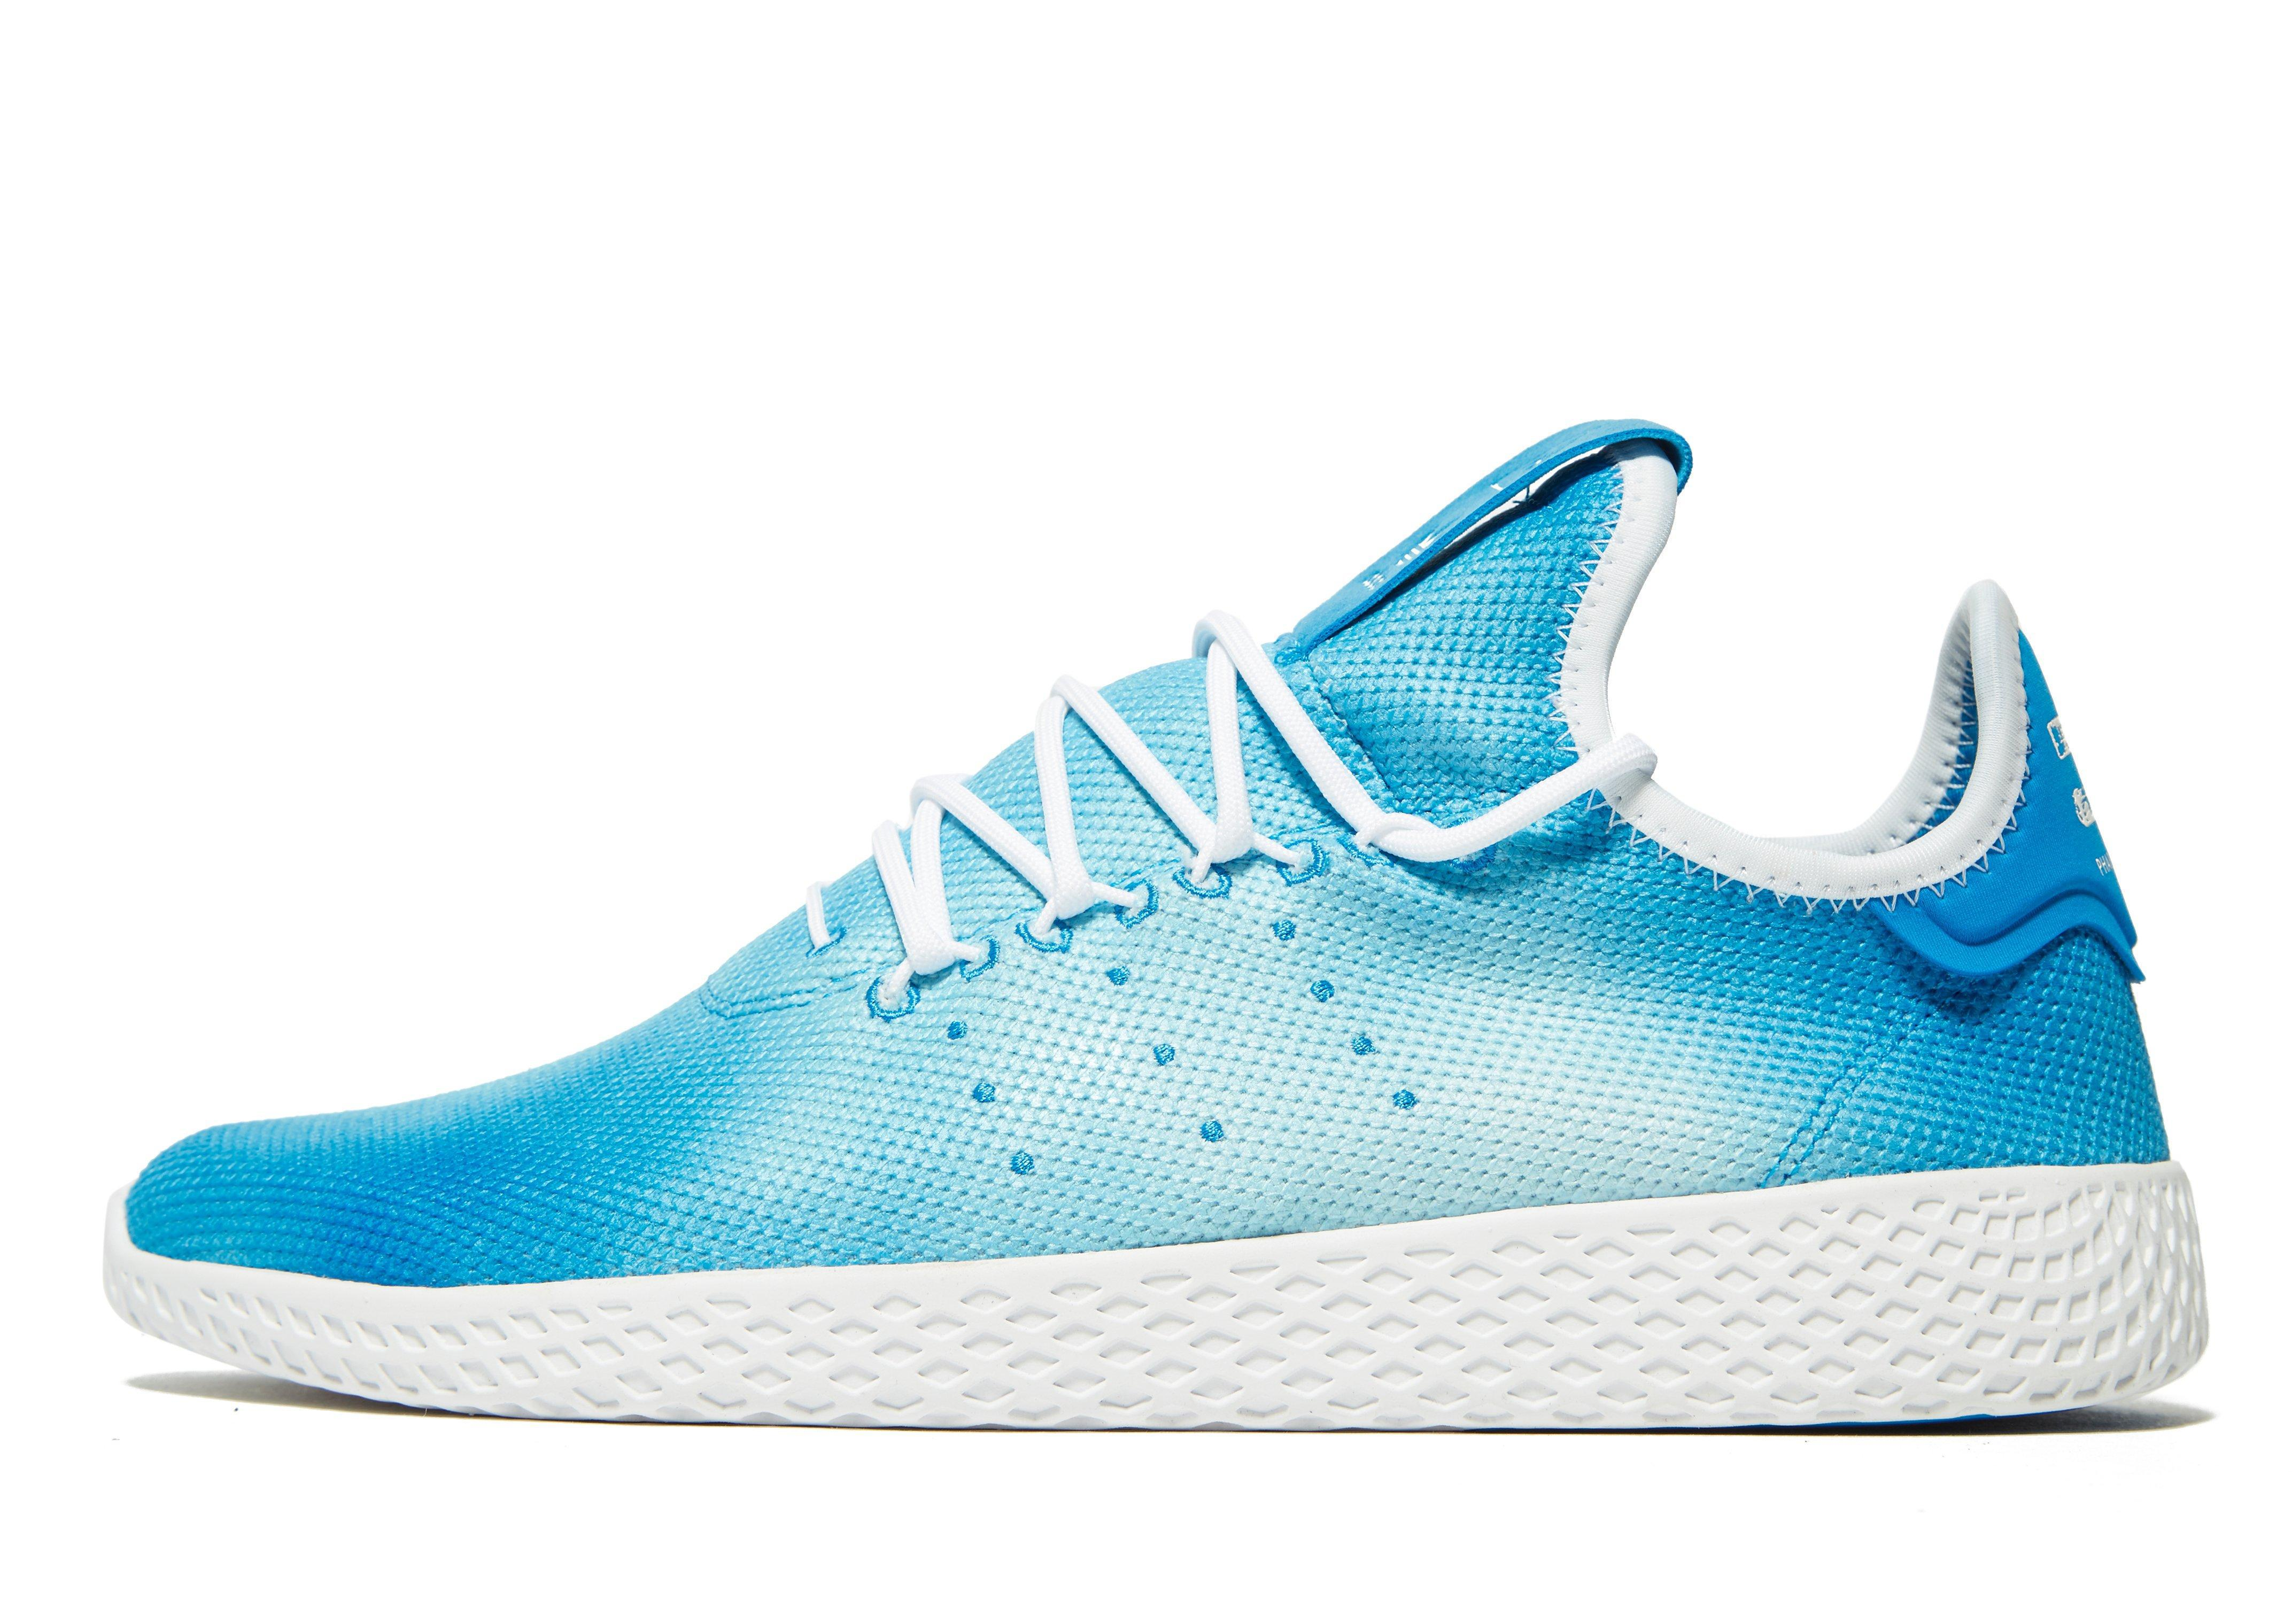 3c5eee9daaf94 Adidas Originals - Blue X Pharrell Williams Holi Tennis Hu for Men - Lyst